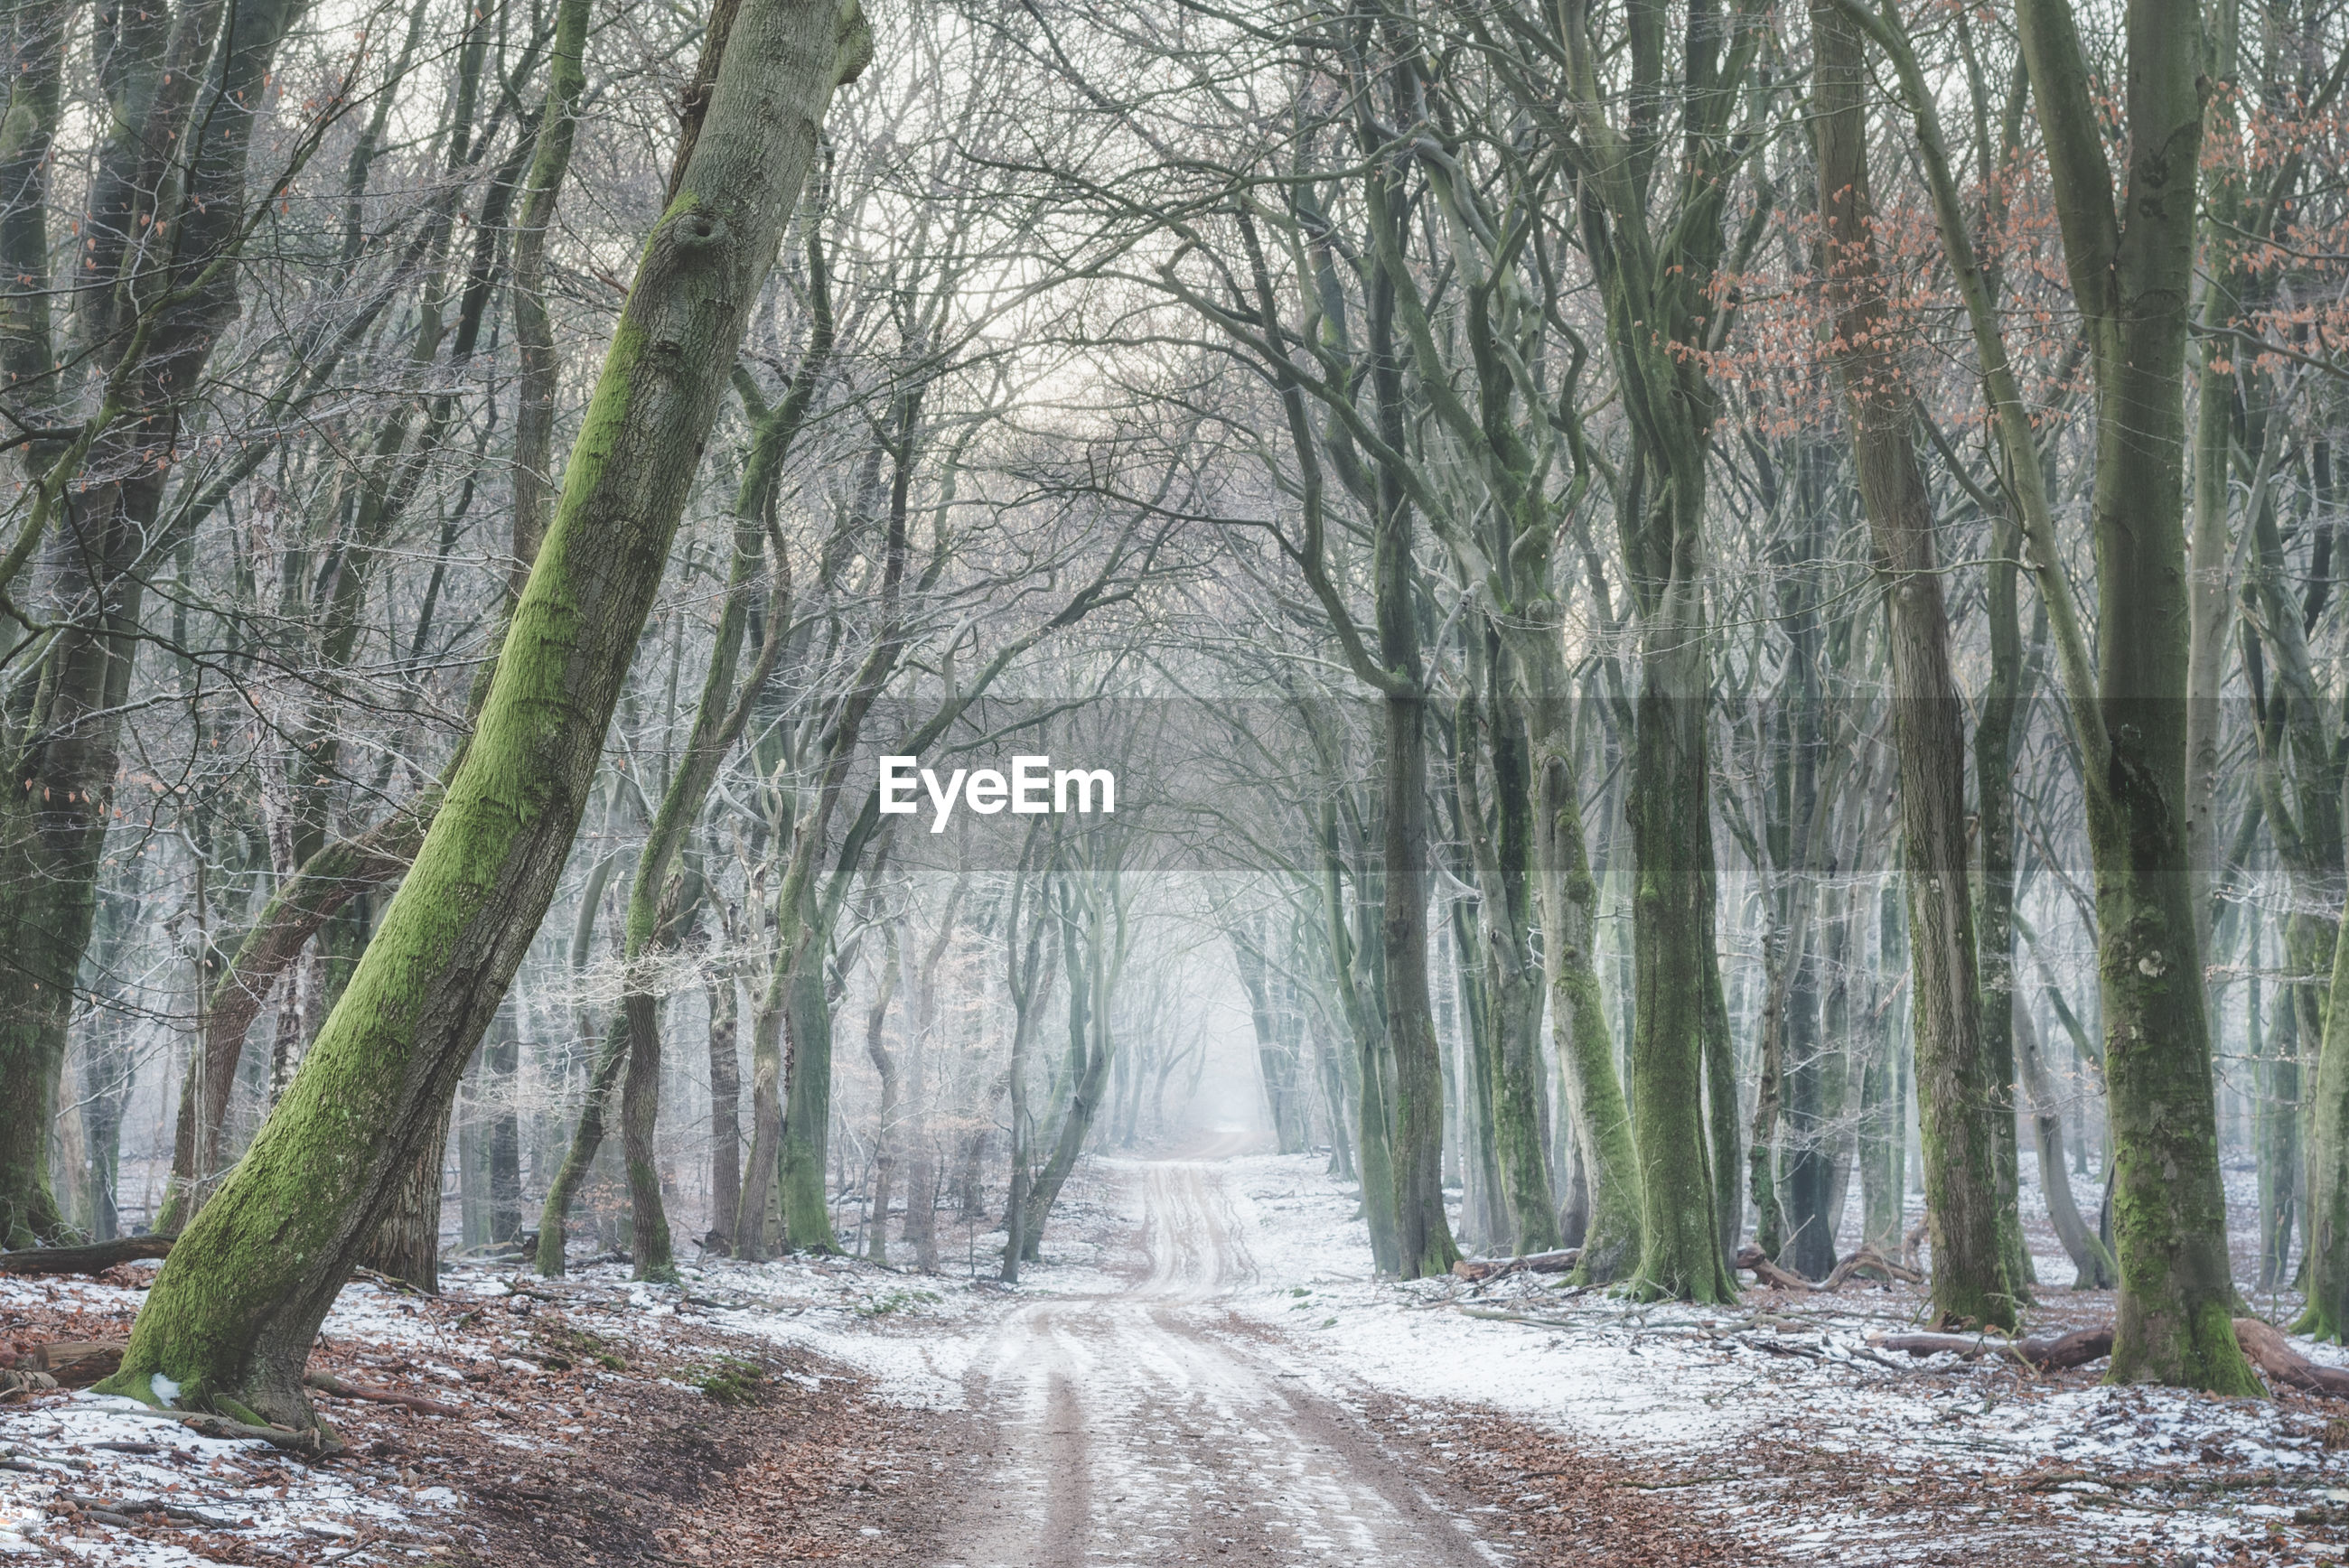 BARE TREES ON LANDSCAPE IN FOREST